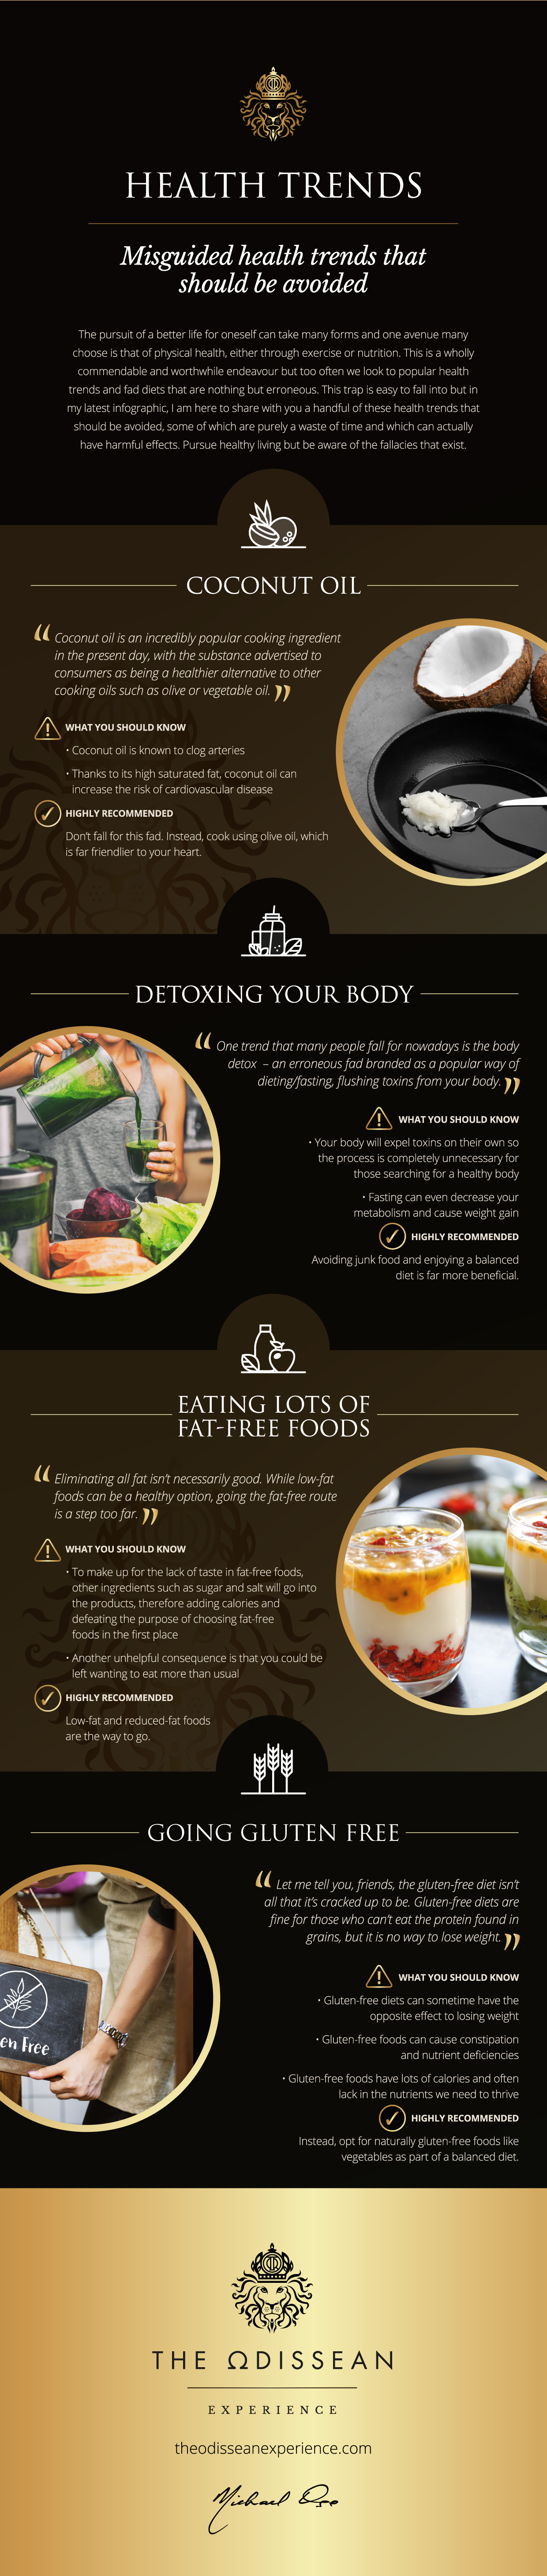 the-odissean-misguided-health-trends-infographic.jpg